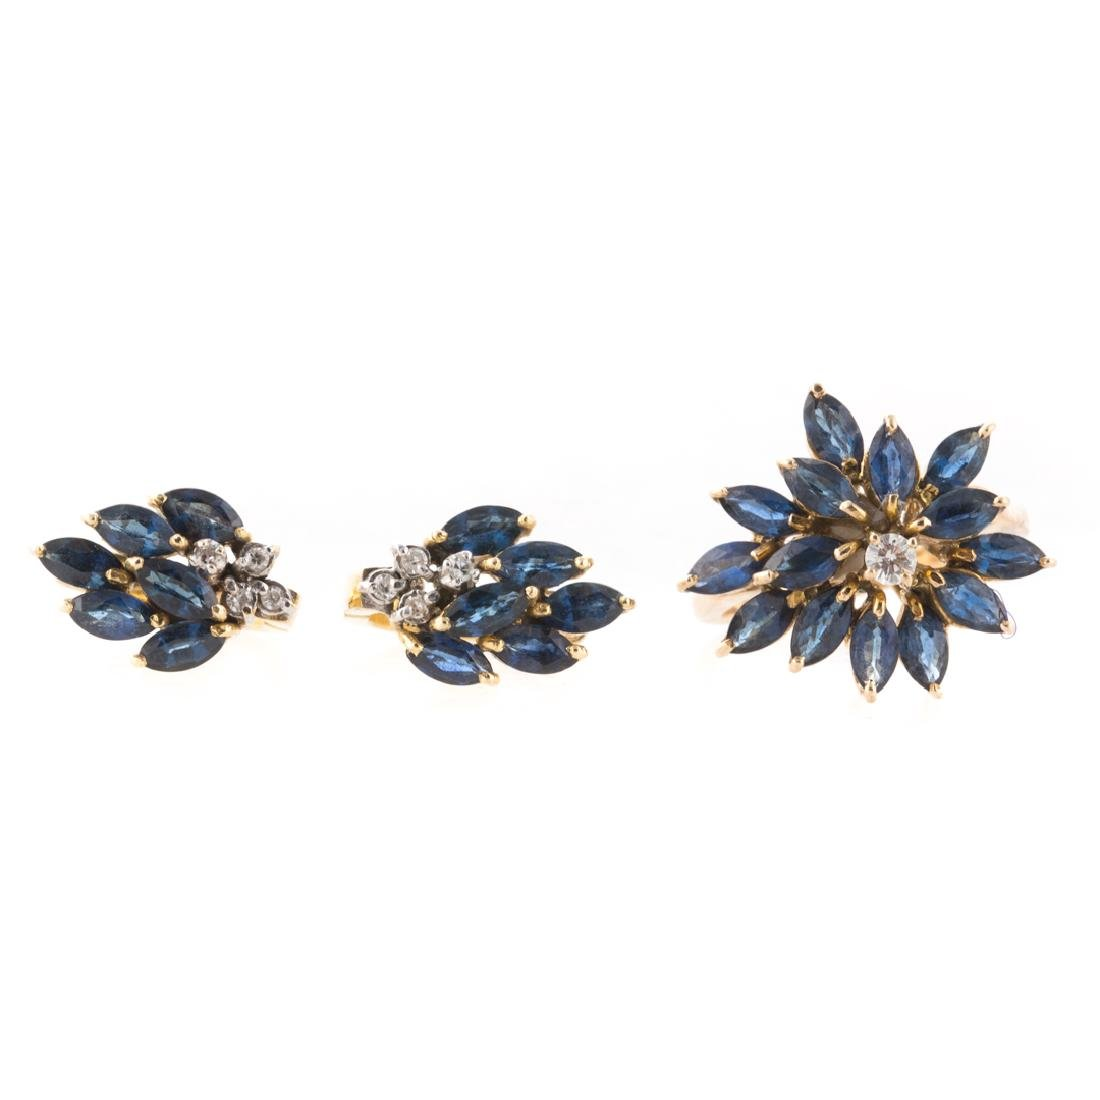 A Sapphire and Diamond Ring & Earring Set in Gold